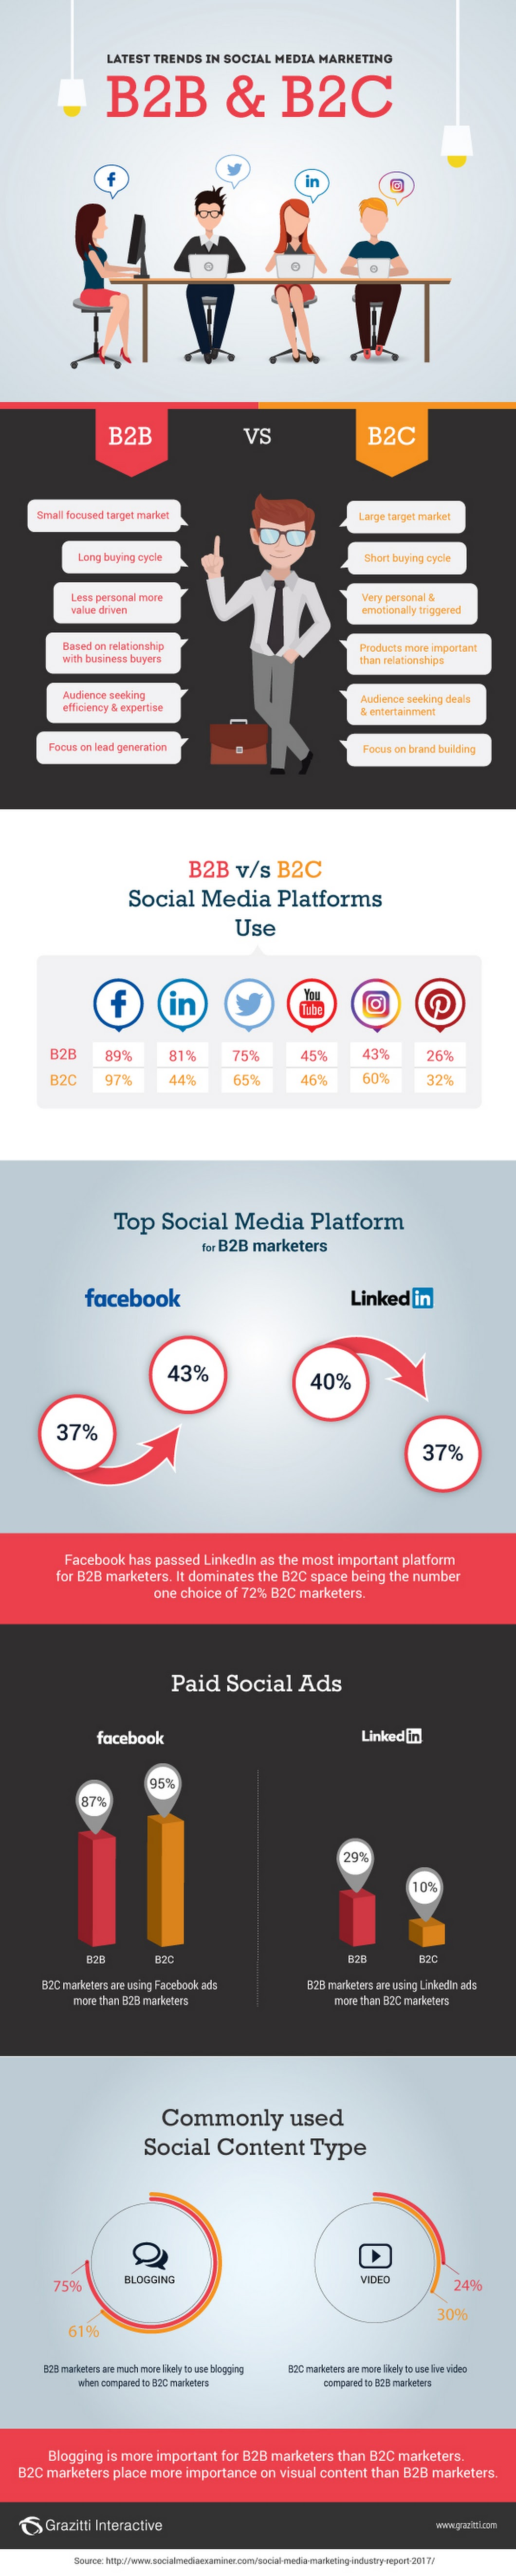 170808-infographic-latest-trends-in-social.jpg